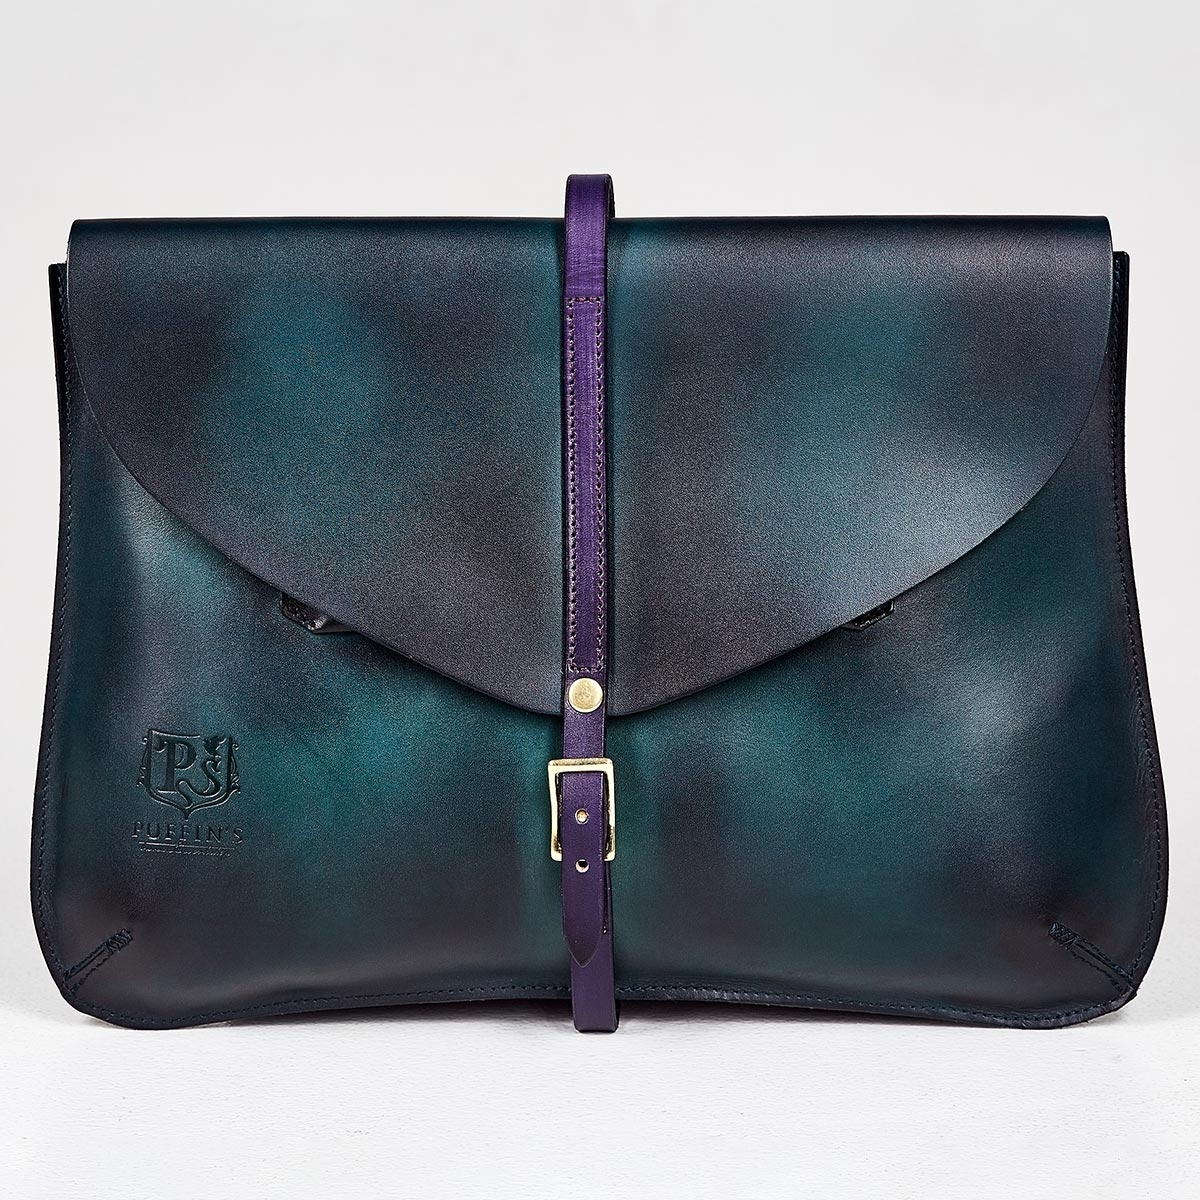 Elegant clutch CELLO / 13'' MacBook case violet ink & bluemarine